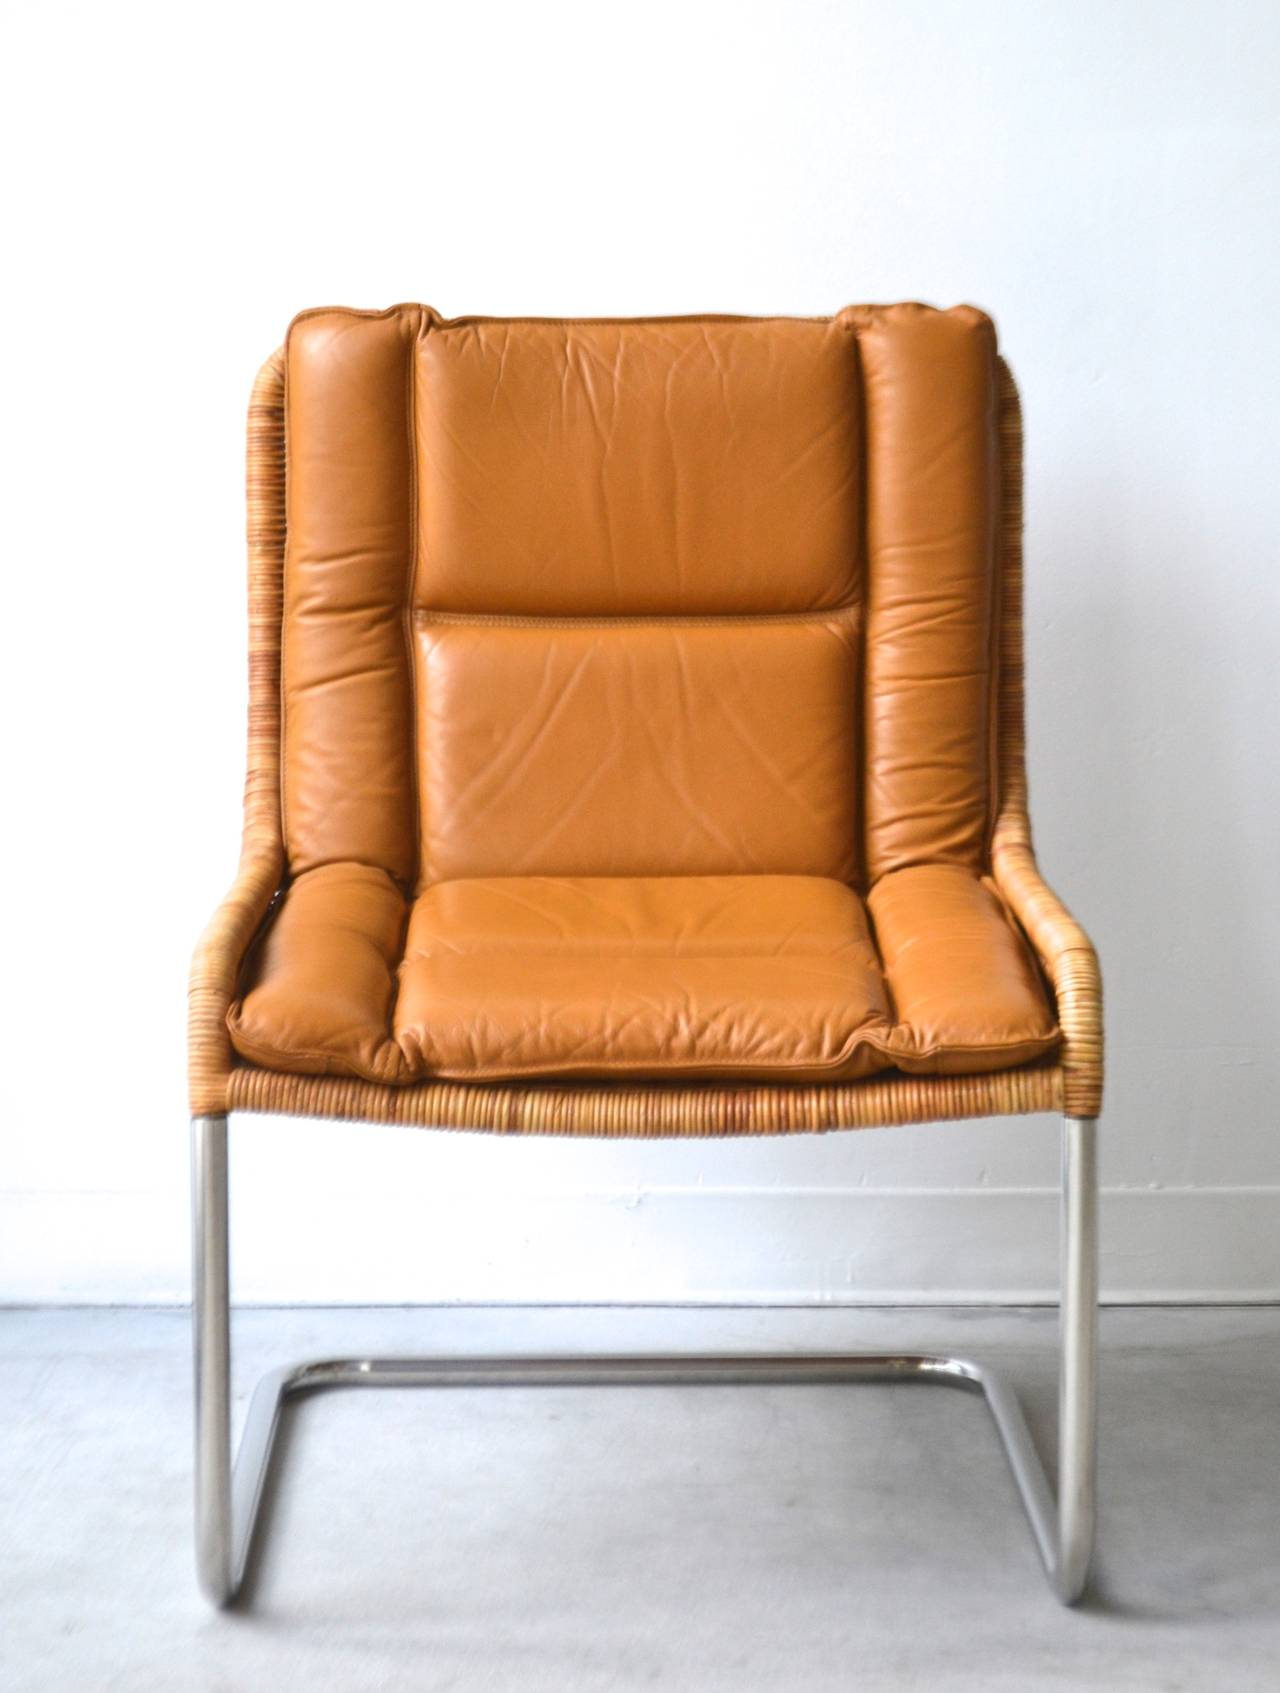 Woven Rattan and Leather Occasional Chair at 1stdibs